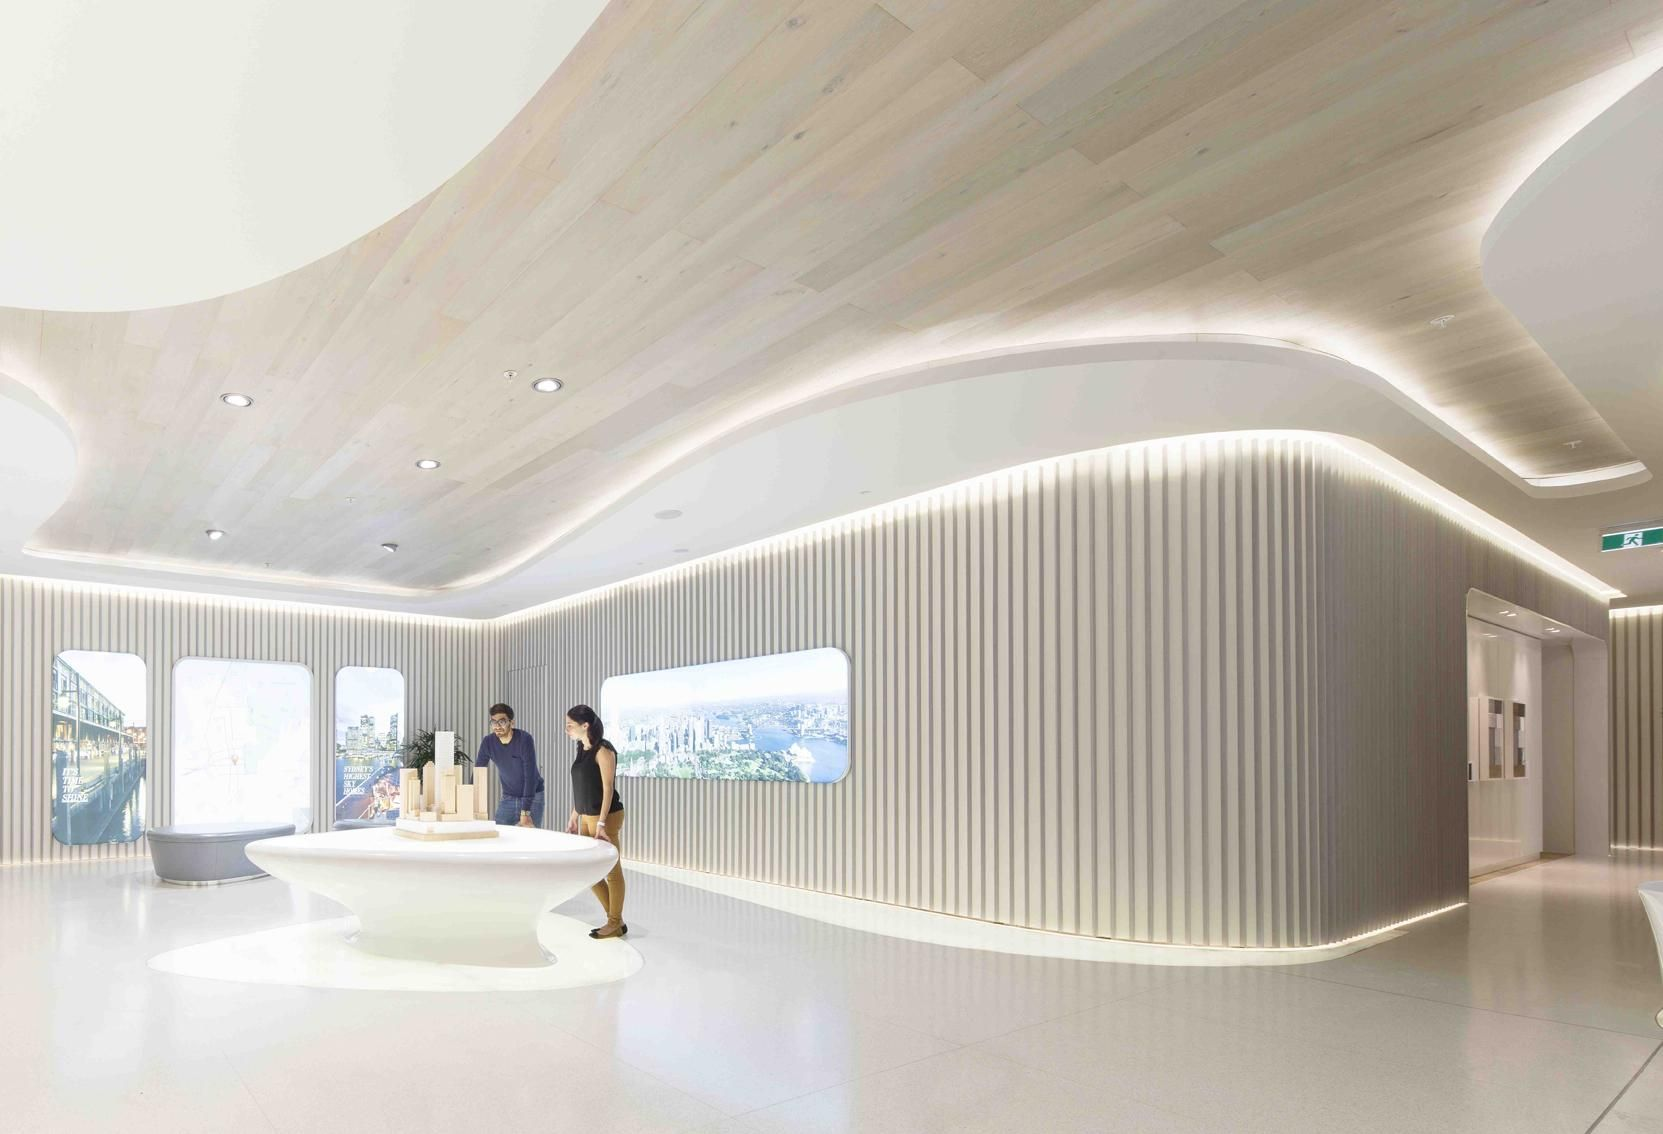 Interior design for an office space in Sydney, Australia by Lava